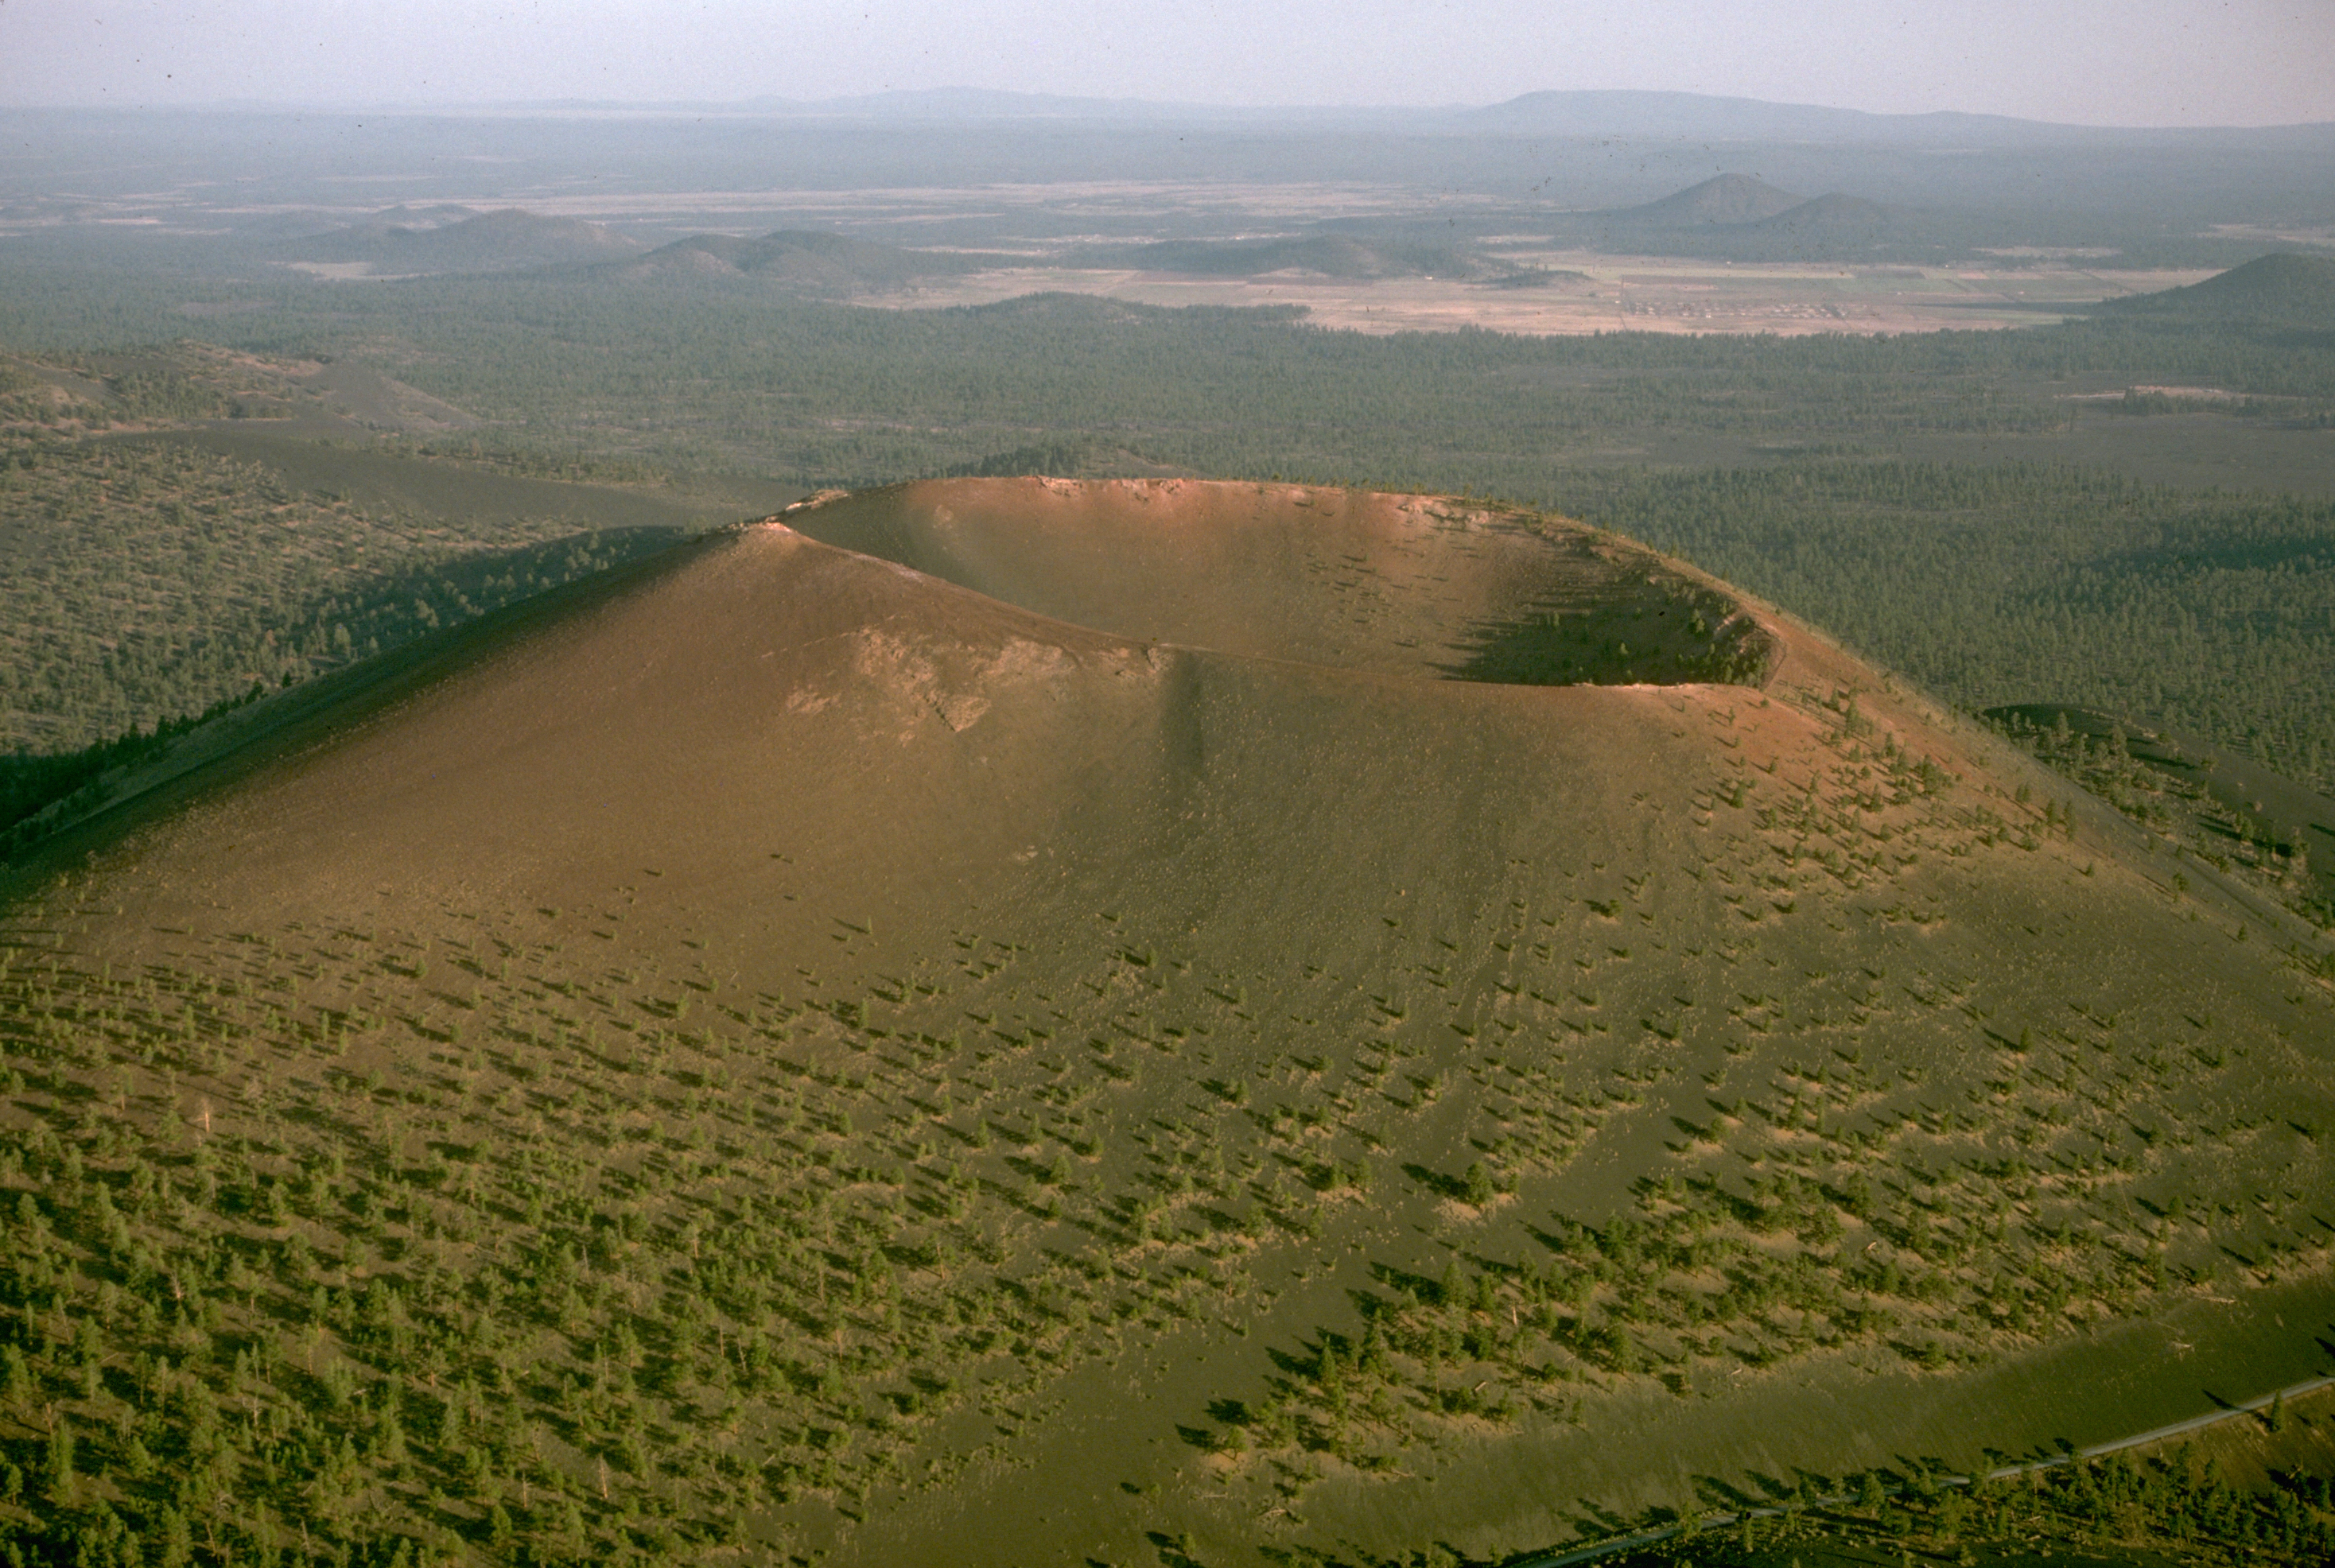 اخطر كوارث العالم Sunset_Crater10.jpg